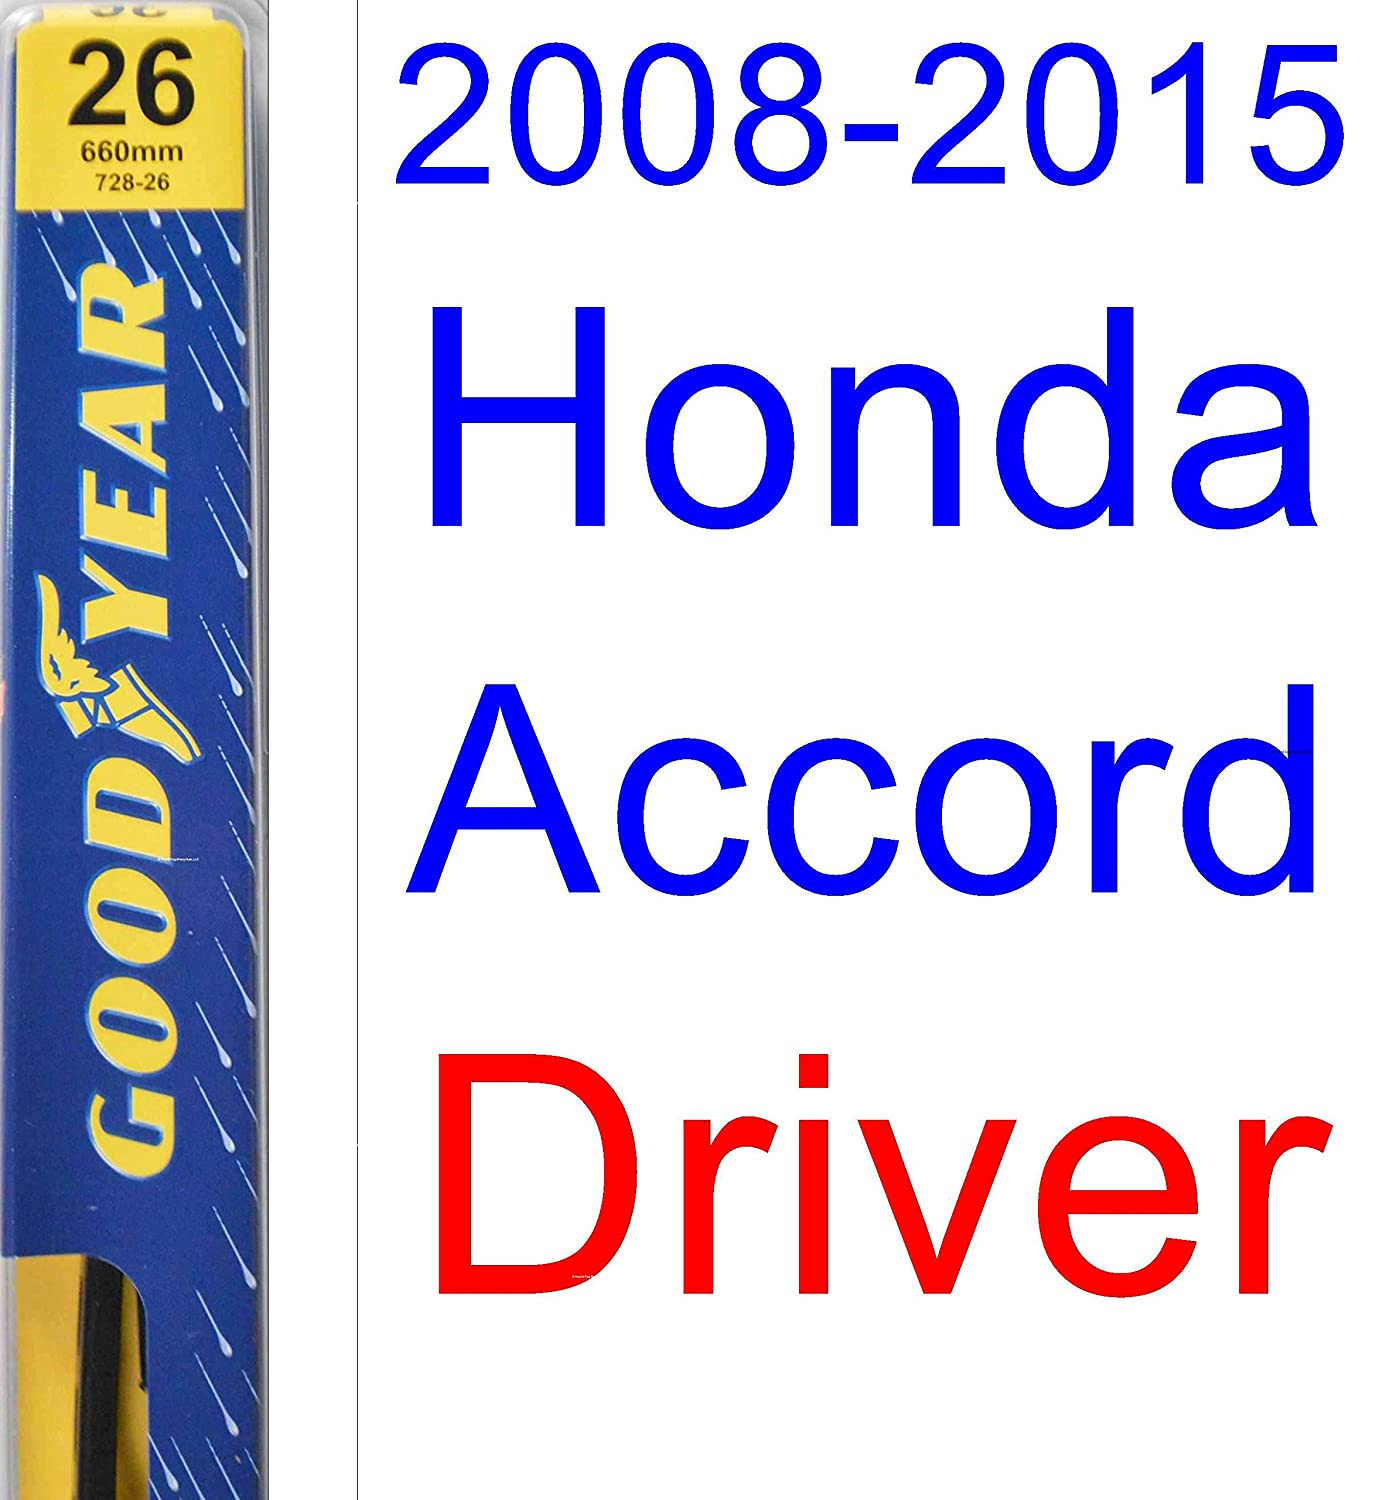 Amazon.com: 2008-2015 Honda Accord Replacement Wiper Blade Set/Kit (Set of 2 Blades) (Goodyear Wiper Blades-Premium) (2009,2010,2011,2012,2013,2014): ...